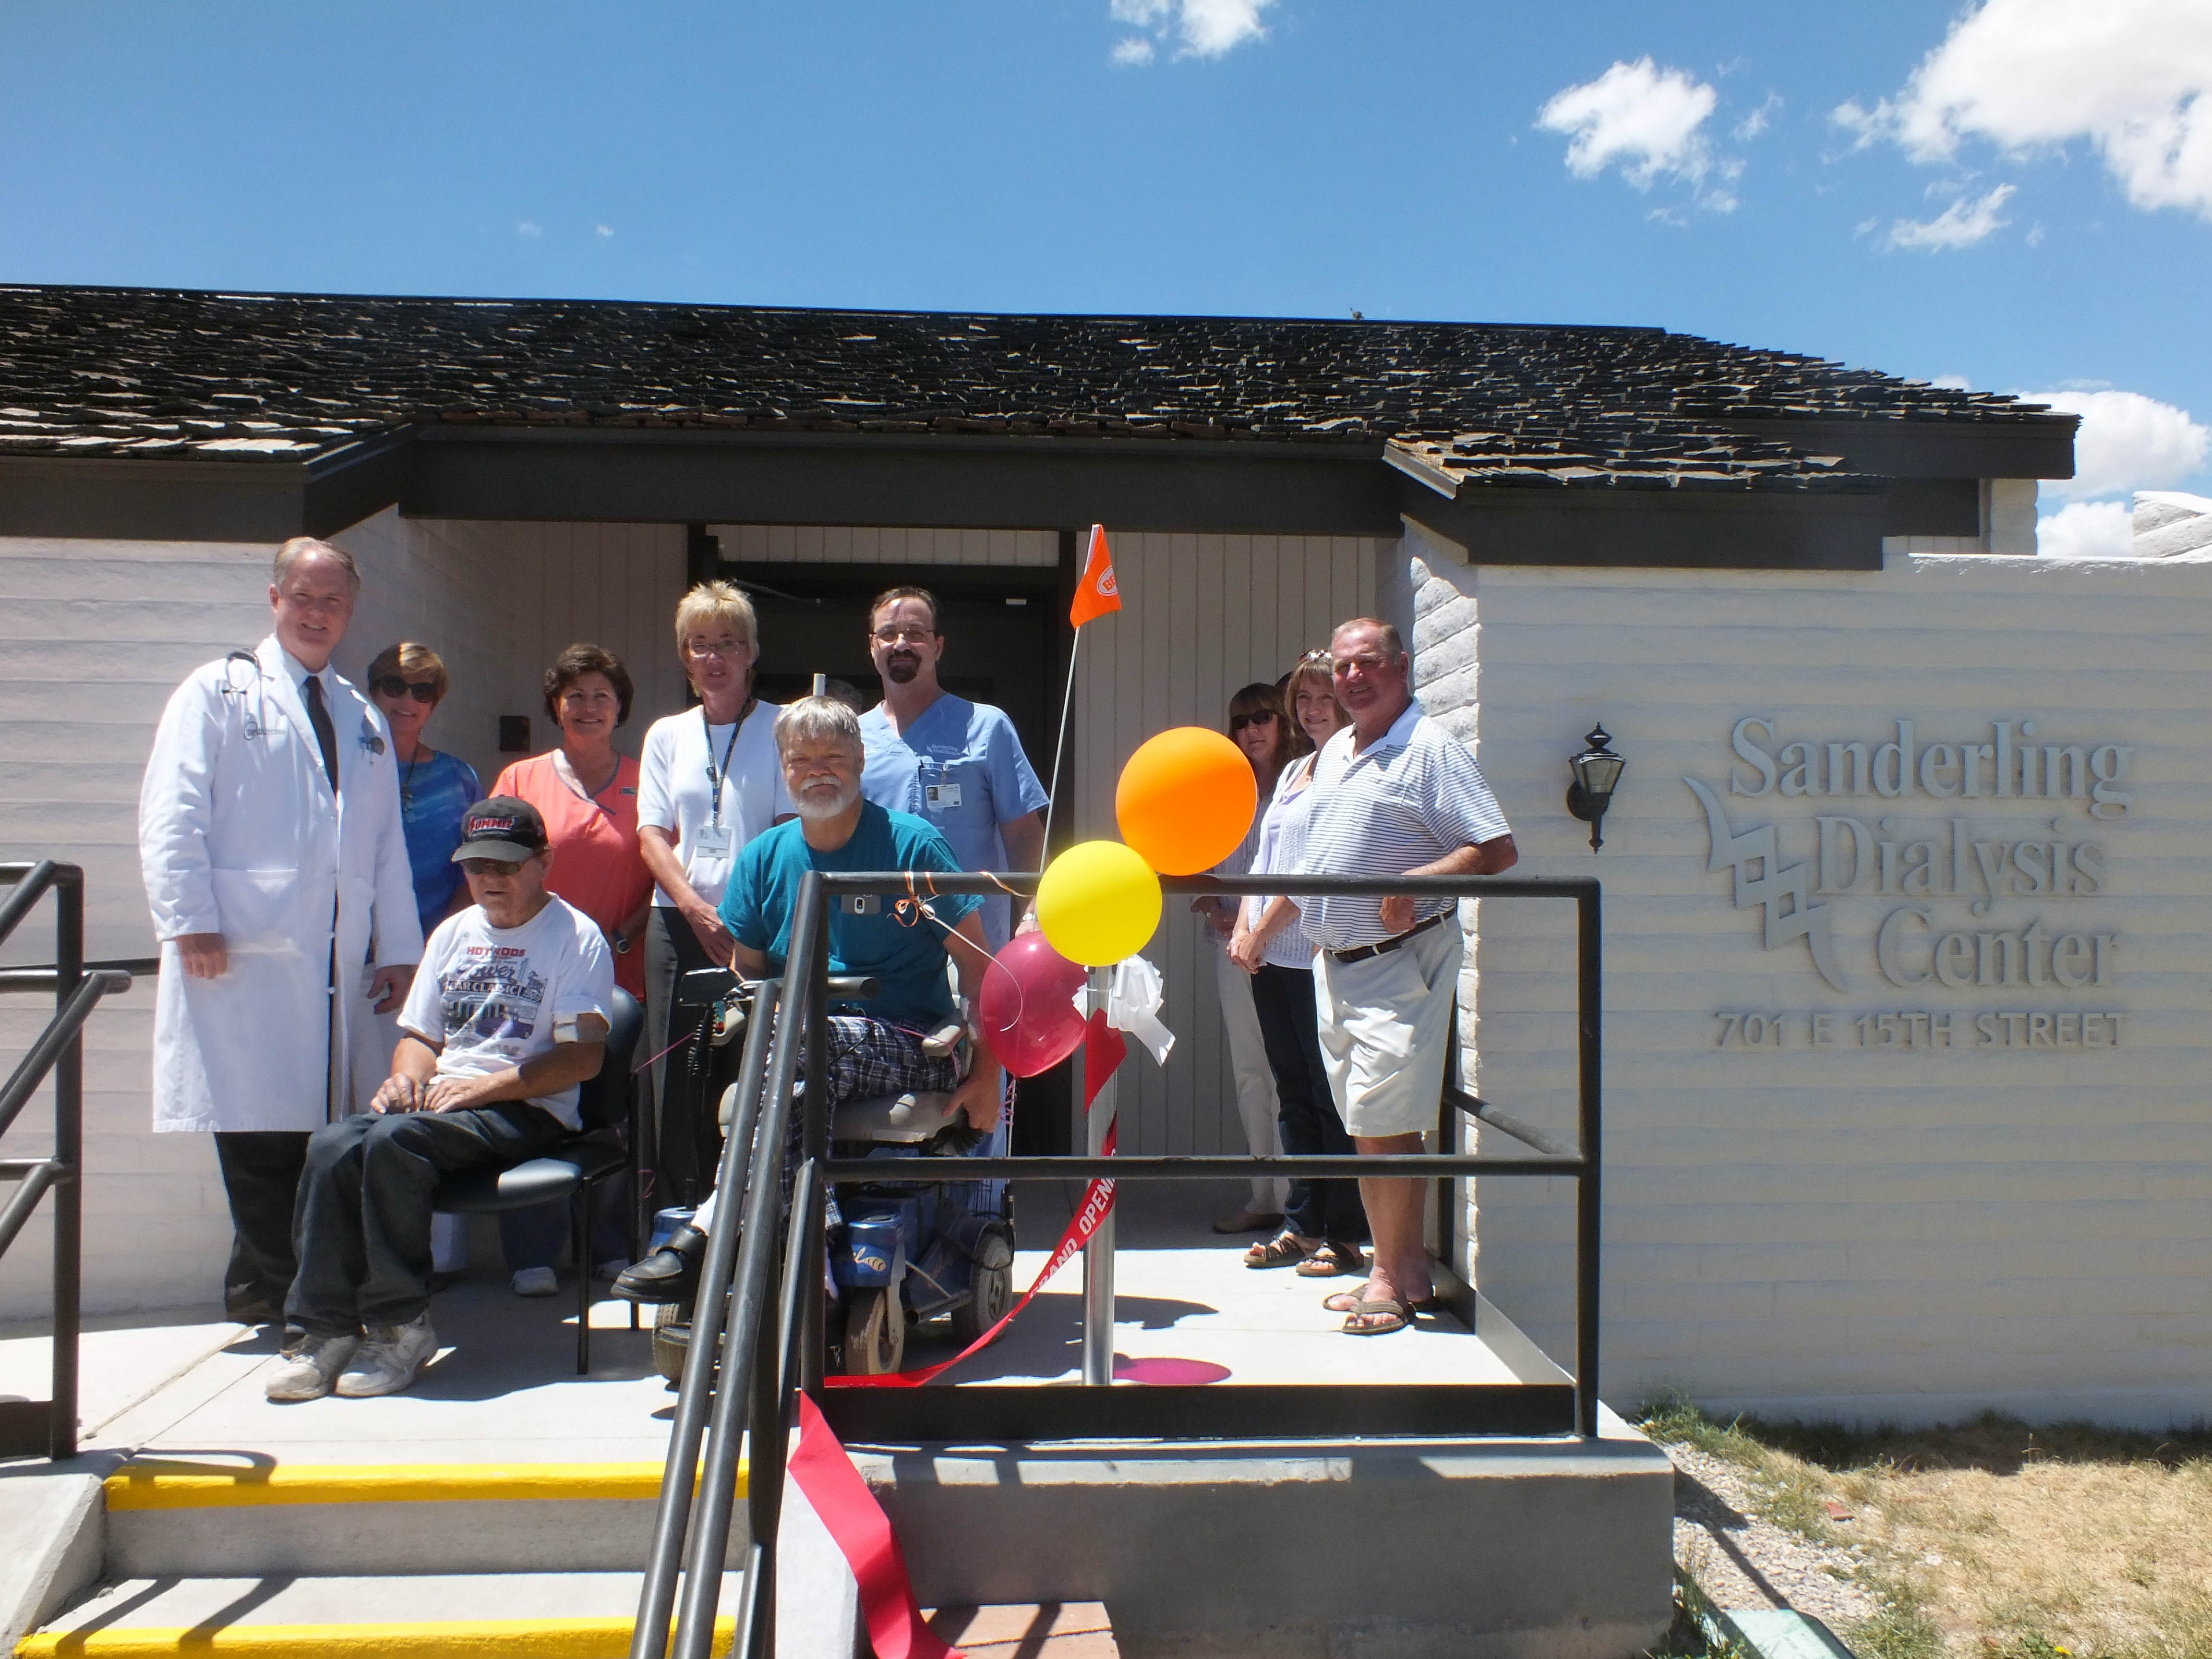 Sanderling Dialysis Center opens in Ely